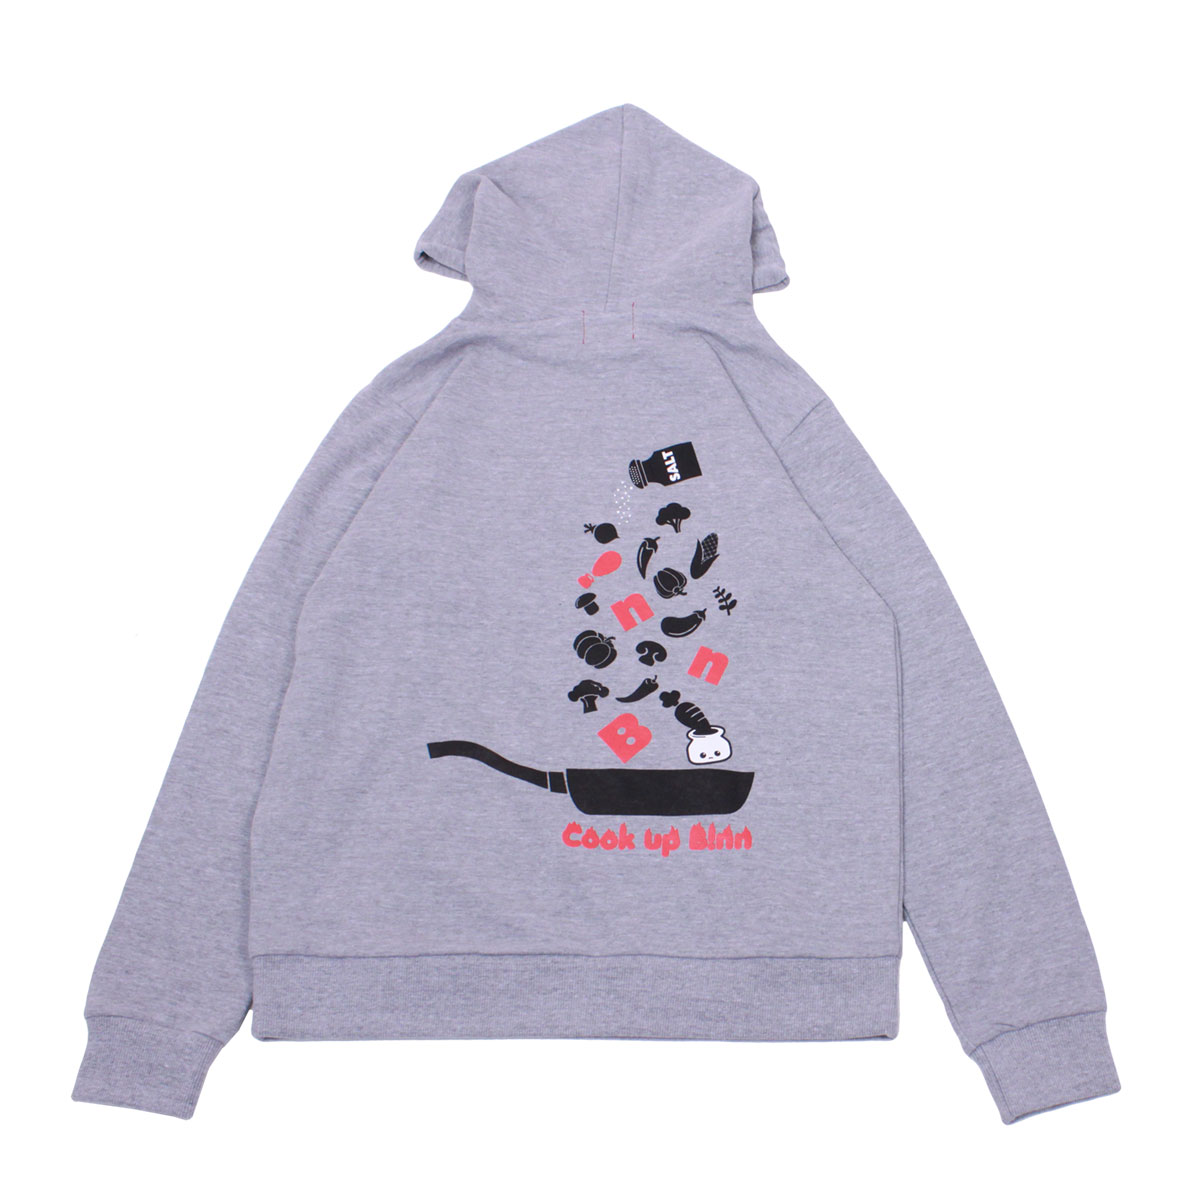 Cook Up B!nn Pullover Hoodie (HeatherGray)